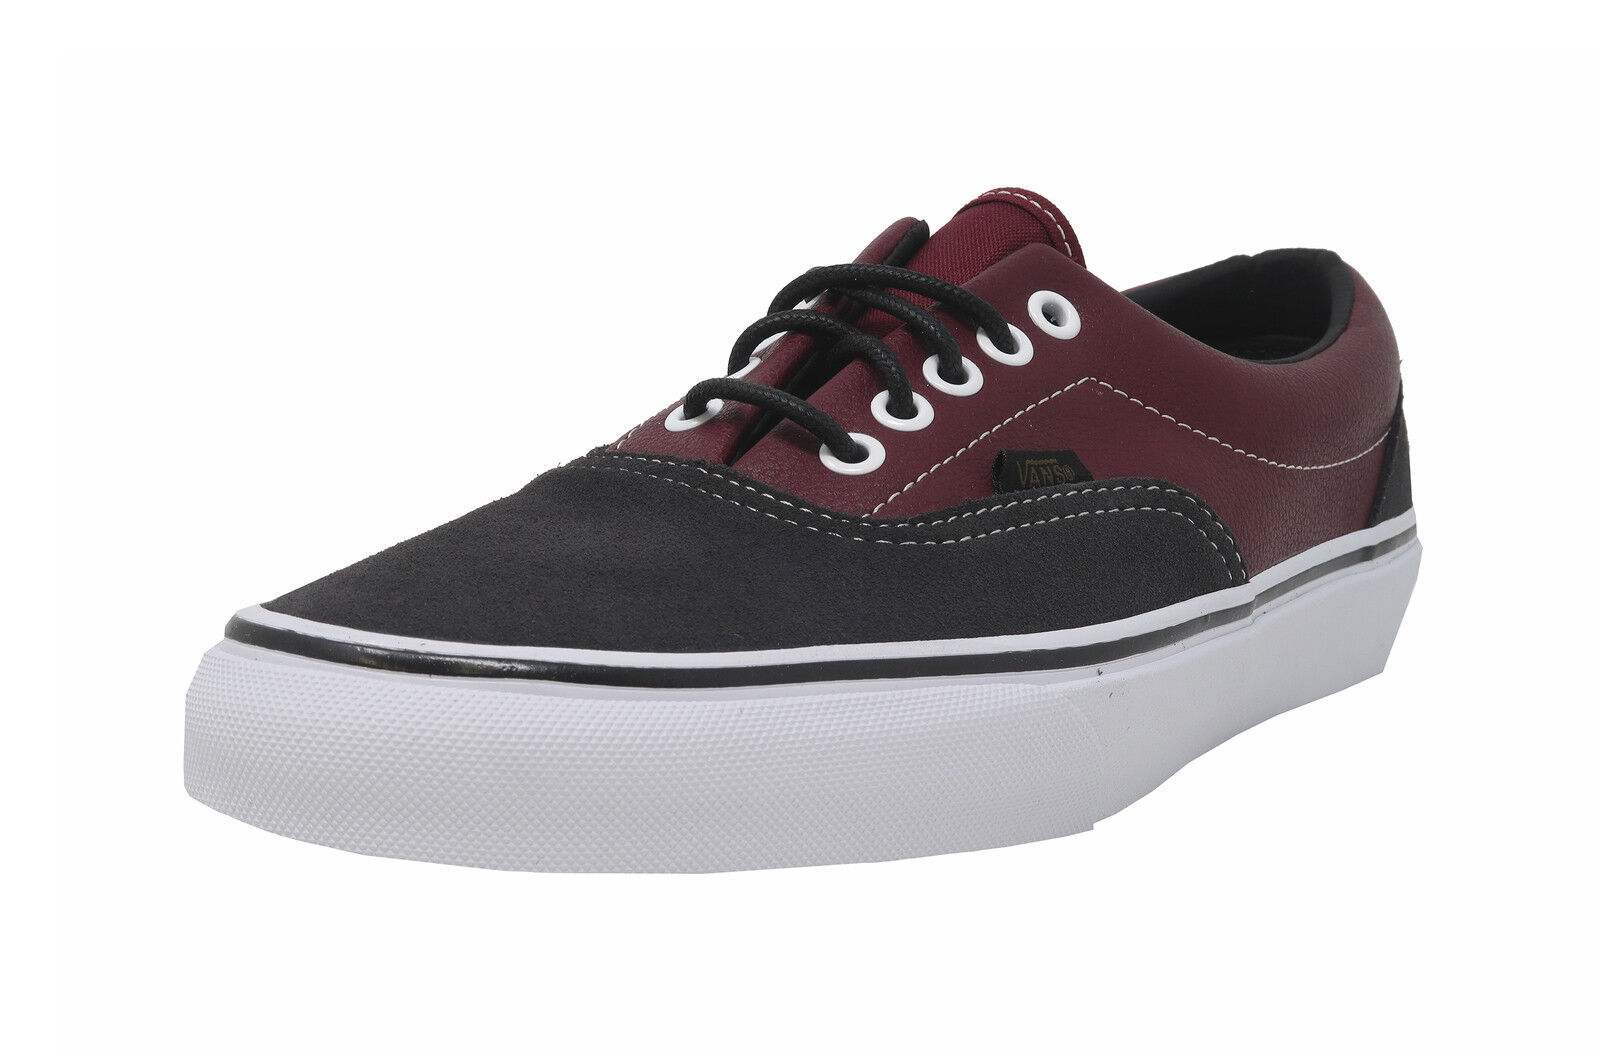 VANS Era Asphalt grau Suede Port Royale Burgundy Leather Turnschuhe Adult Men schuhe